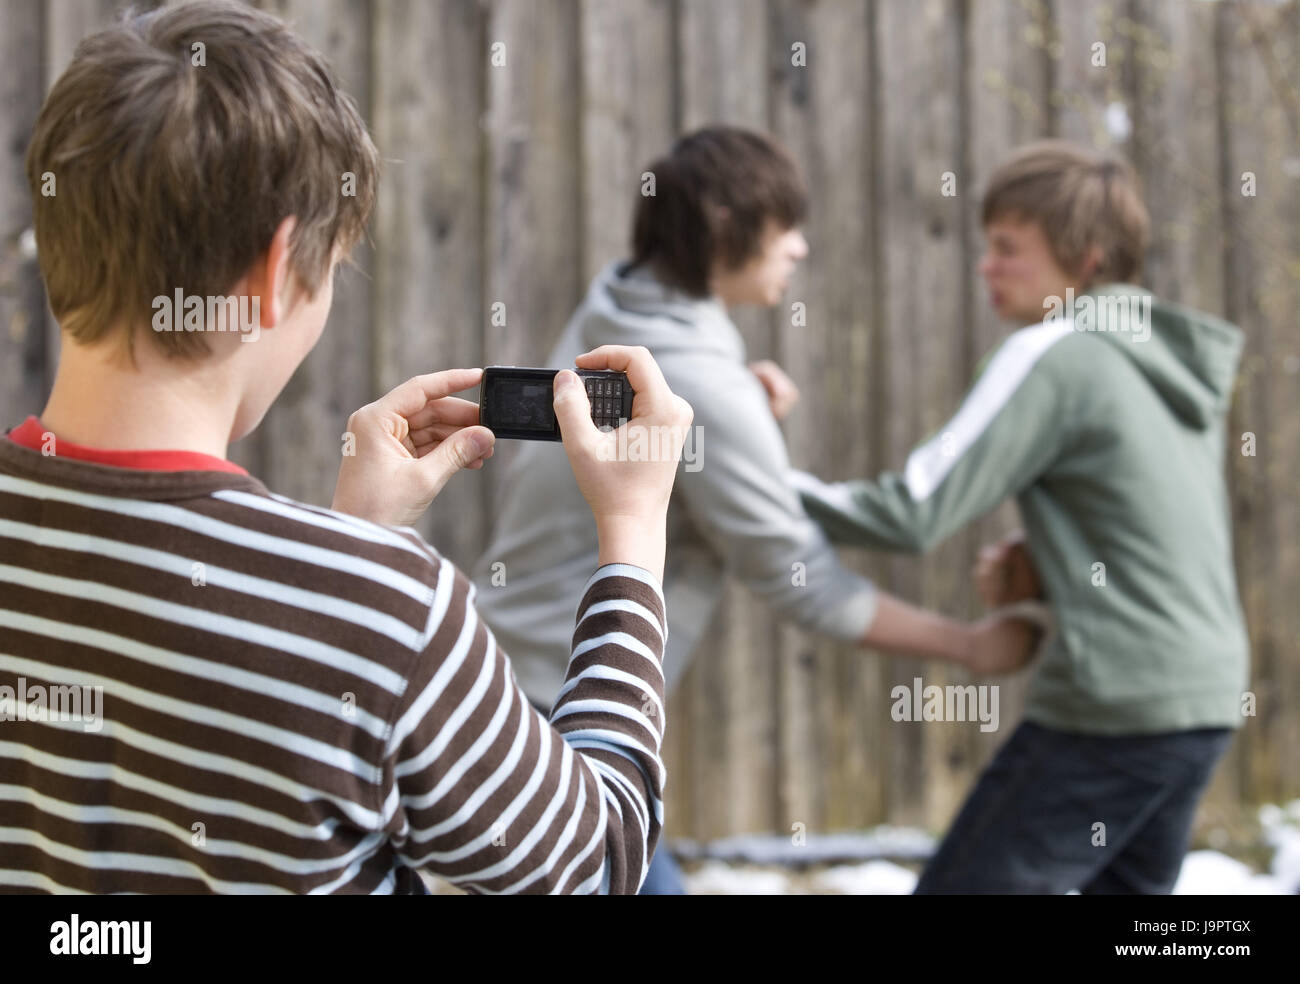 Young persons,aggression,fight,mobile phone,film,blur,boy,teenager,youth,fury,violent,fight,scuffle,fight,enemies,rivals,rage,fight,fight,outside,power,action,phone,camera - Stock Image